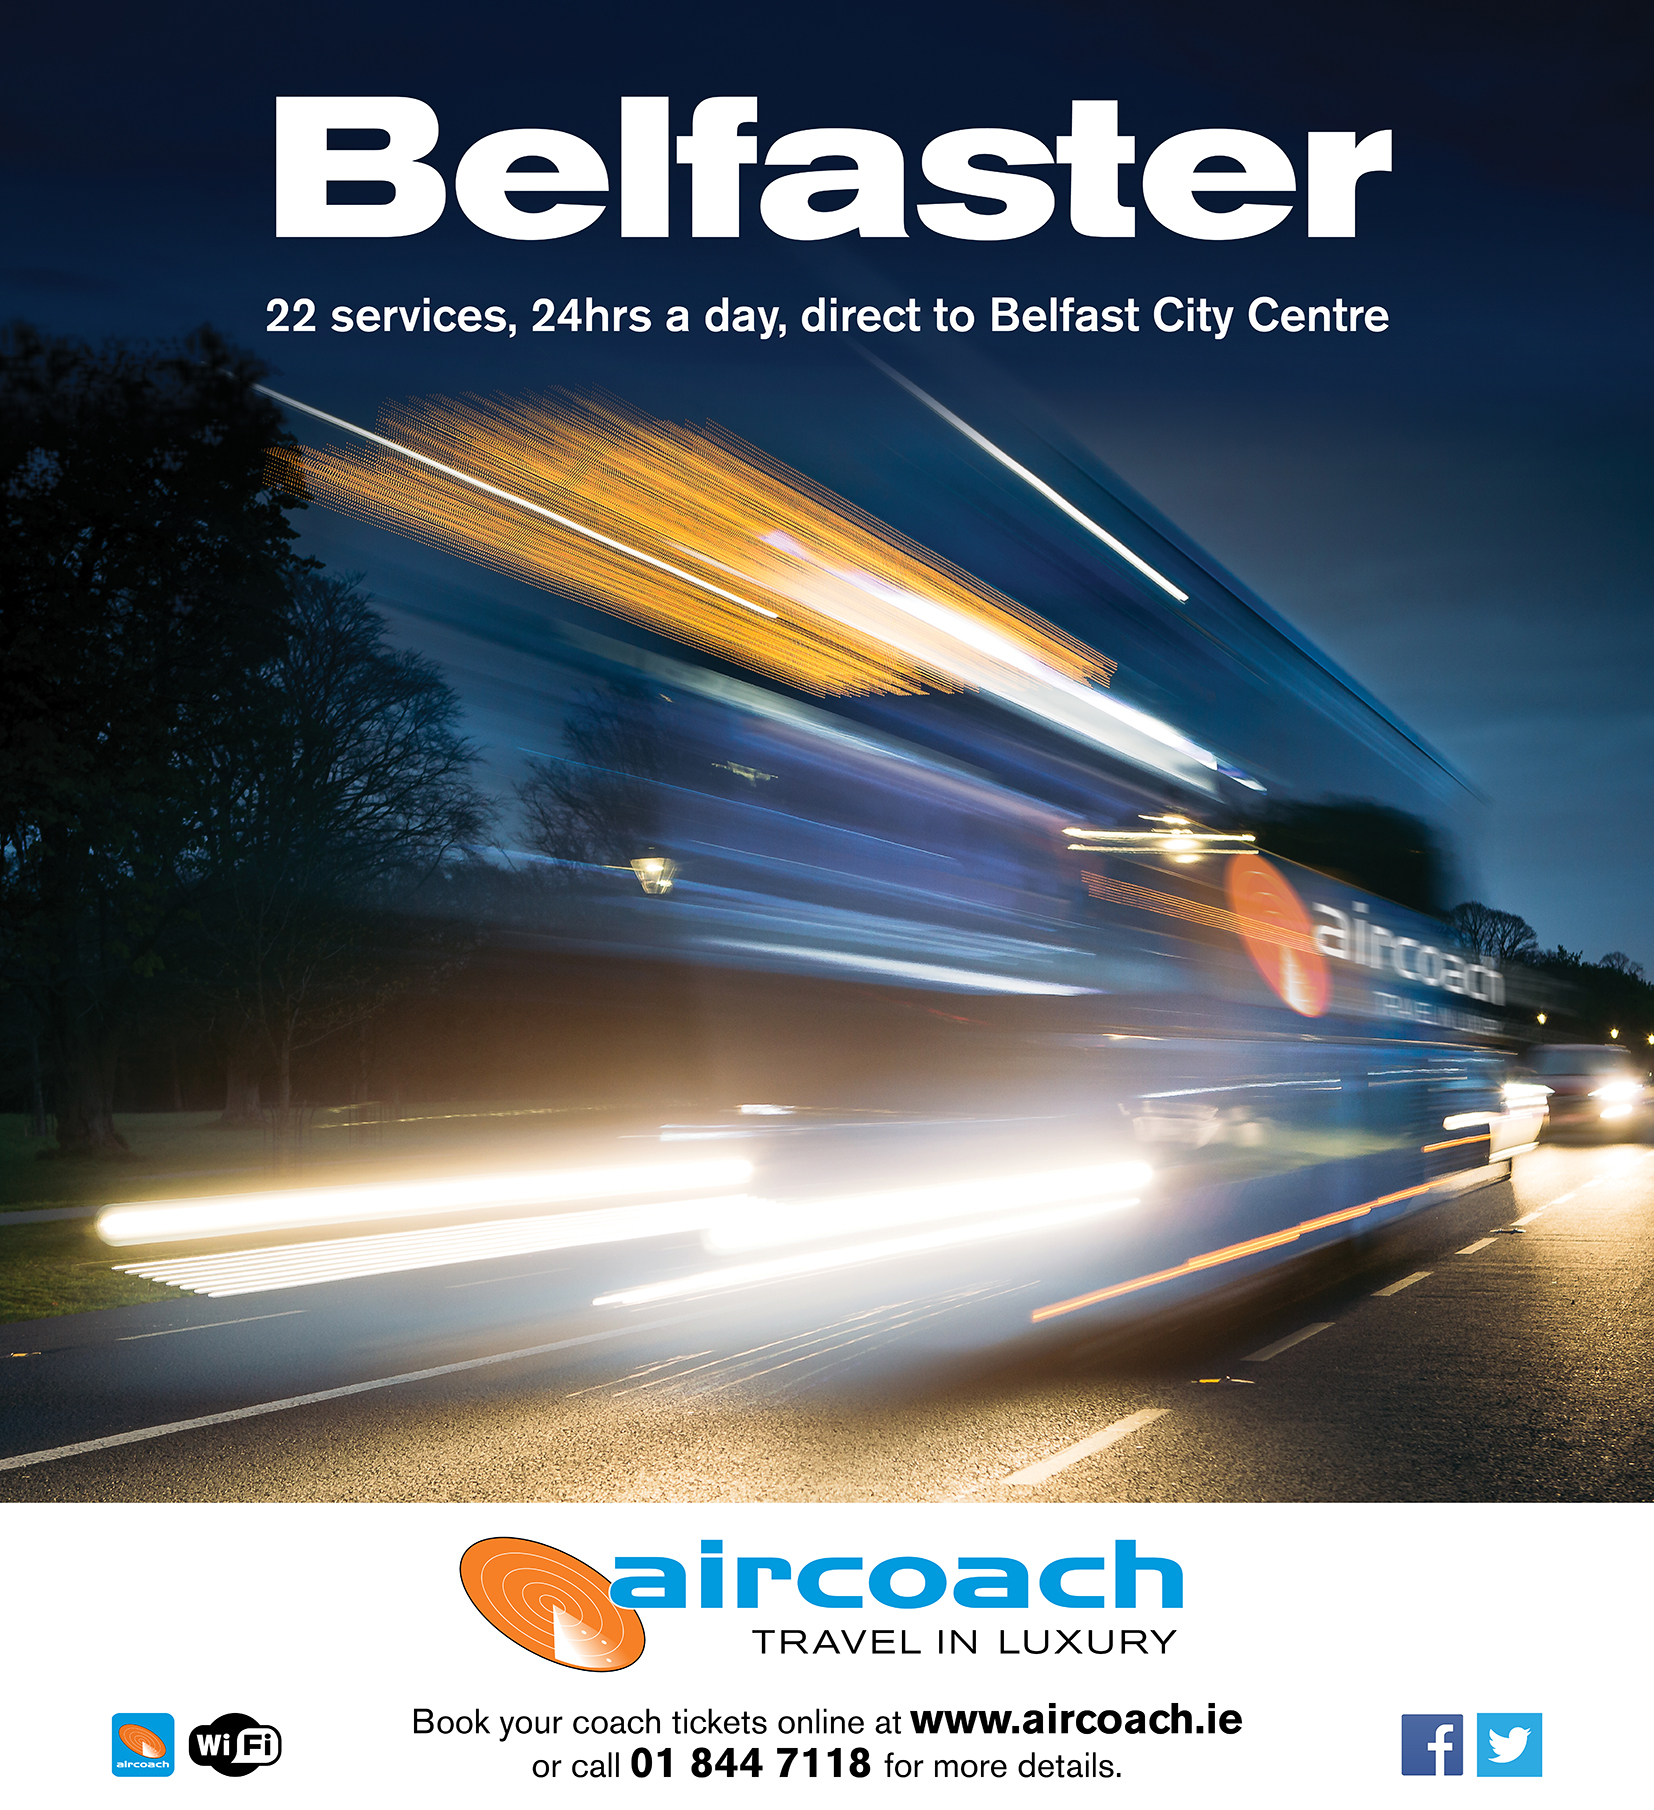 Marketing Network - Aircoach Belfast